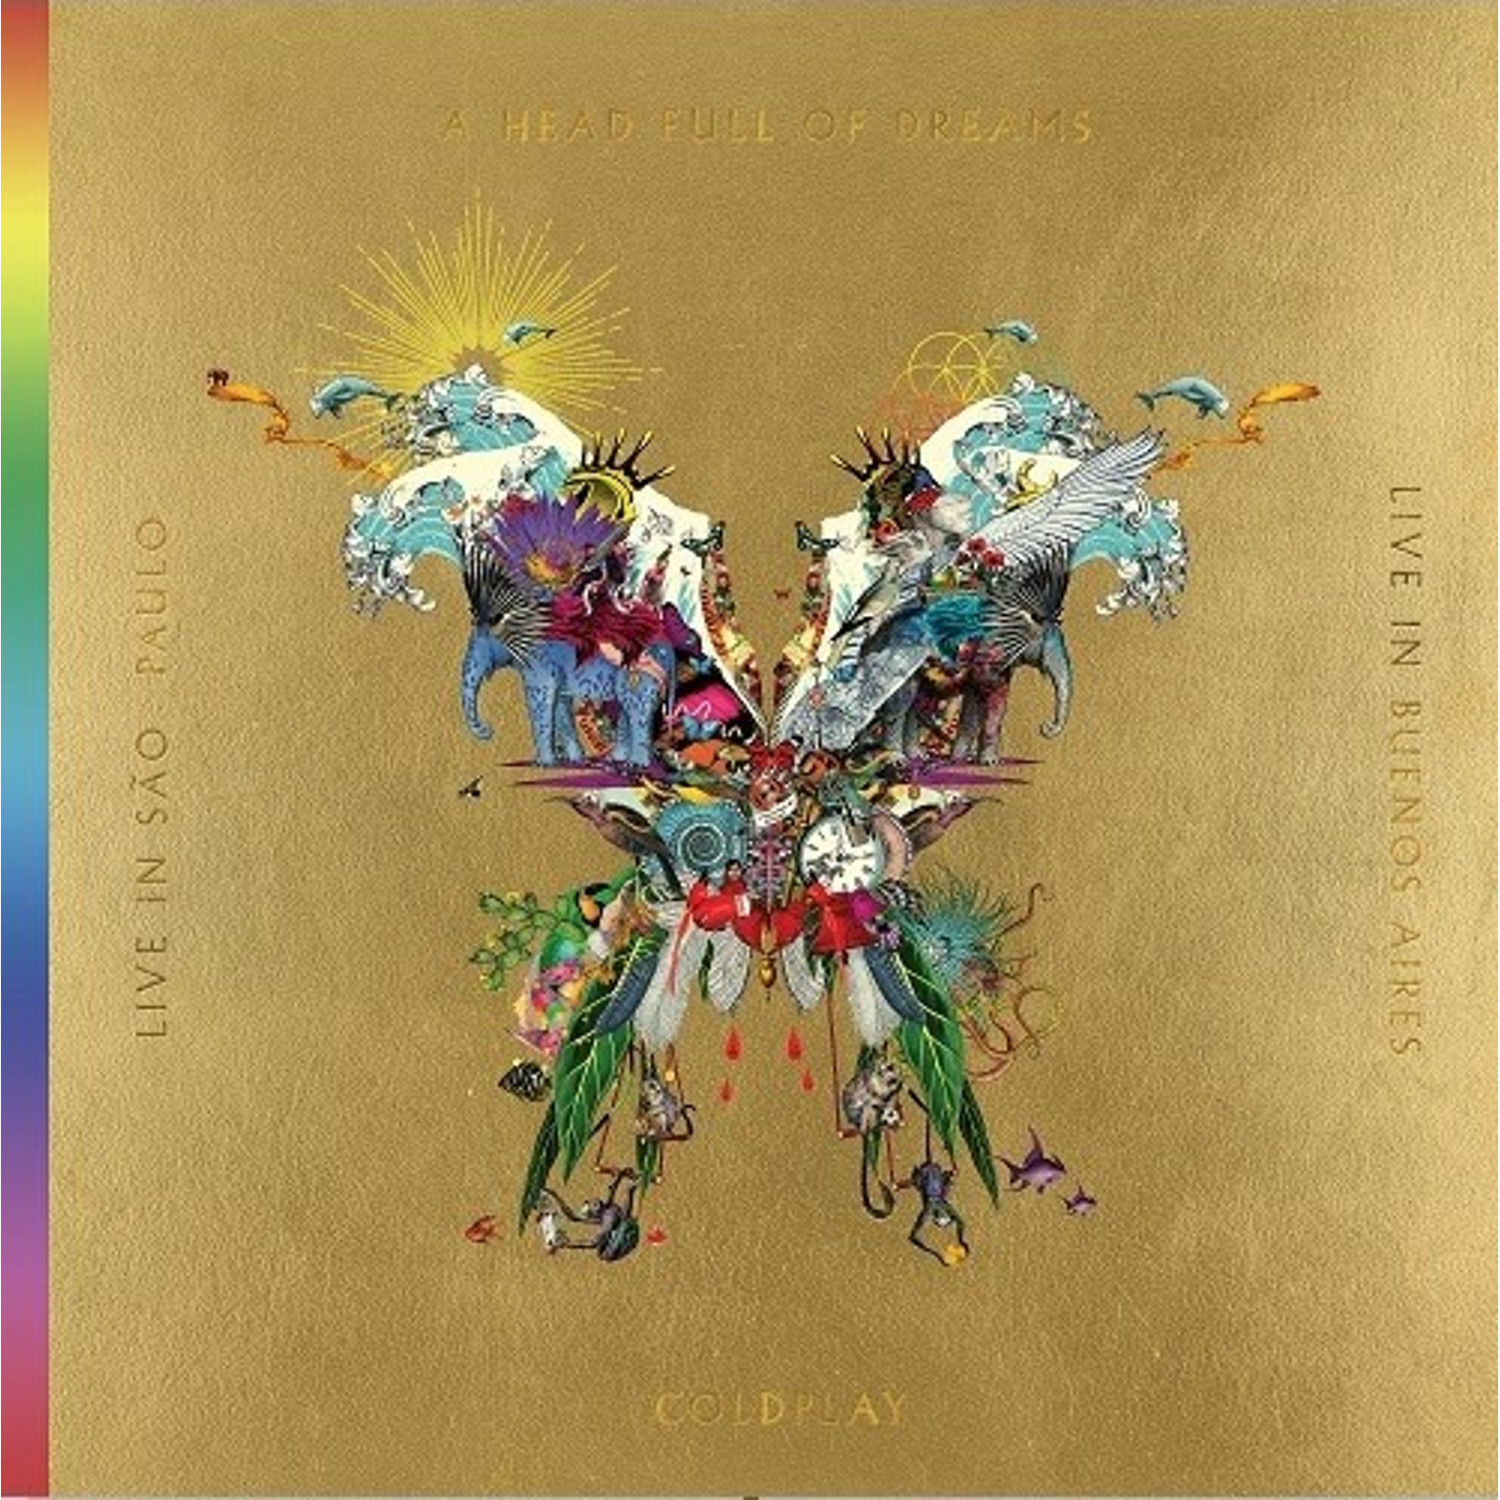 Coldplay - Live in Buenos Aires / Live in Sao Paulo / A Head full of Dreams (CD + DVD)